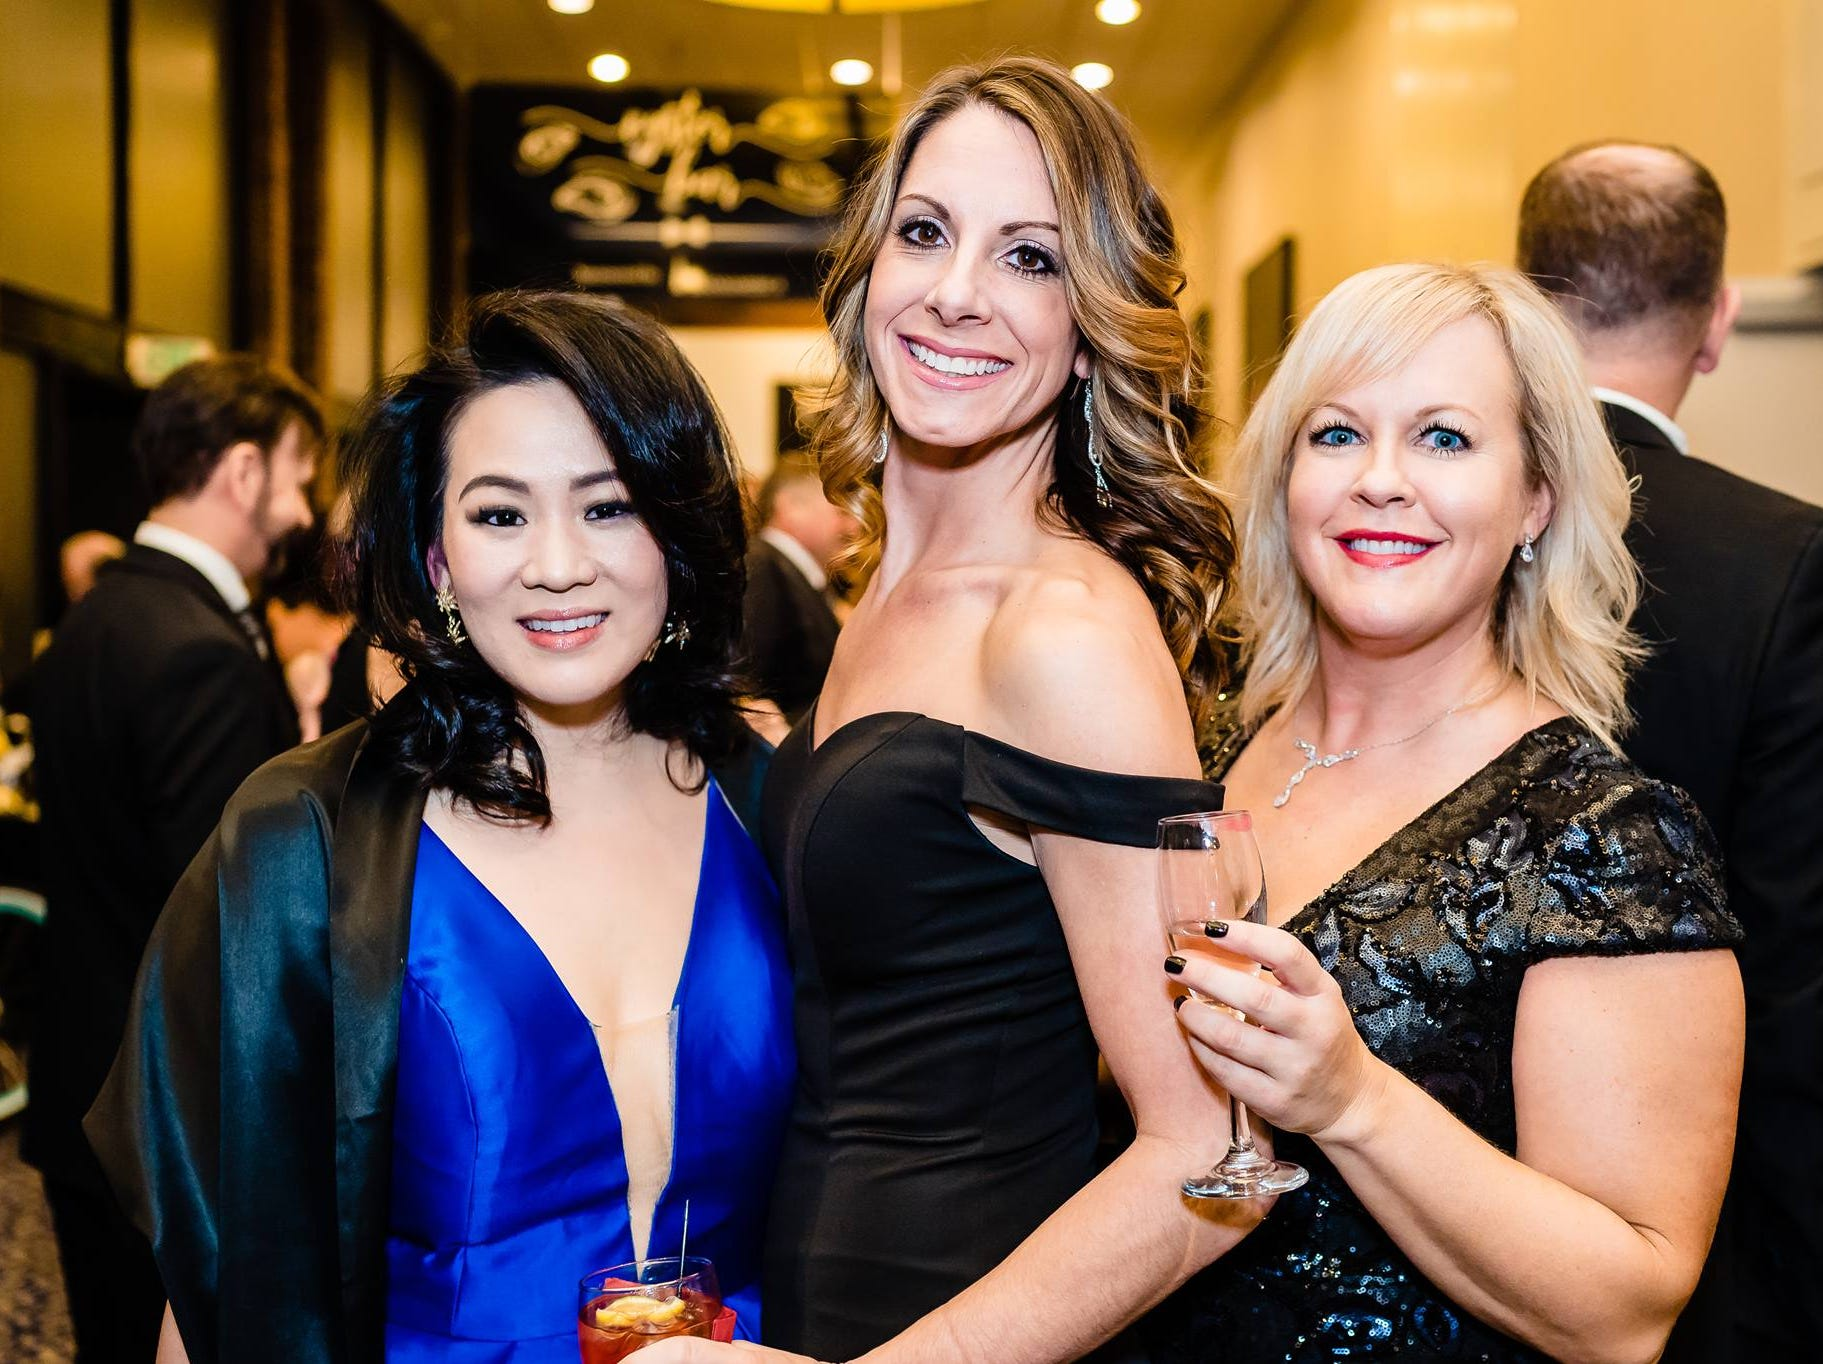 The funds will go toward helping Penn-Mar expand and maintain existing services for Pennsylvania and Maryland residents with intellectual and developmental disabilities. (Left to right) Diana Lee, Allison Braglio and Lindsay Moore pose at the gala, March 2, 2019.